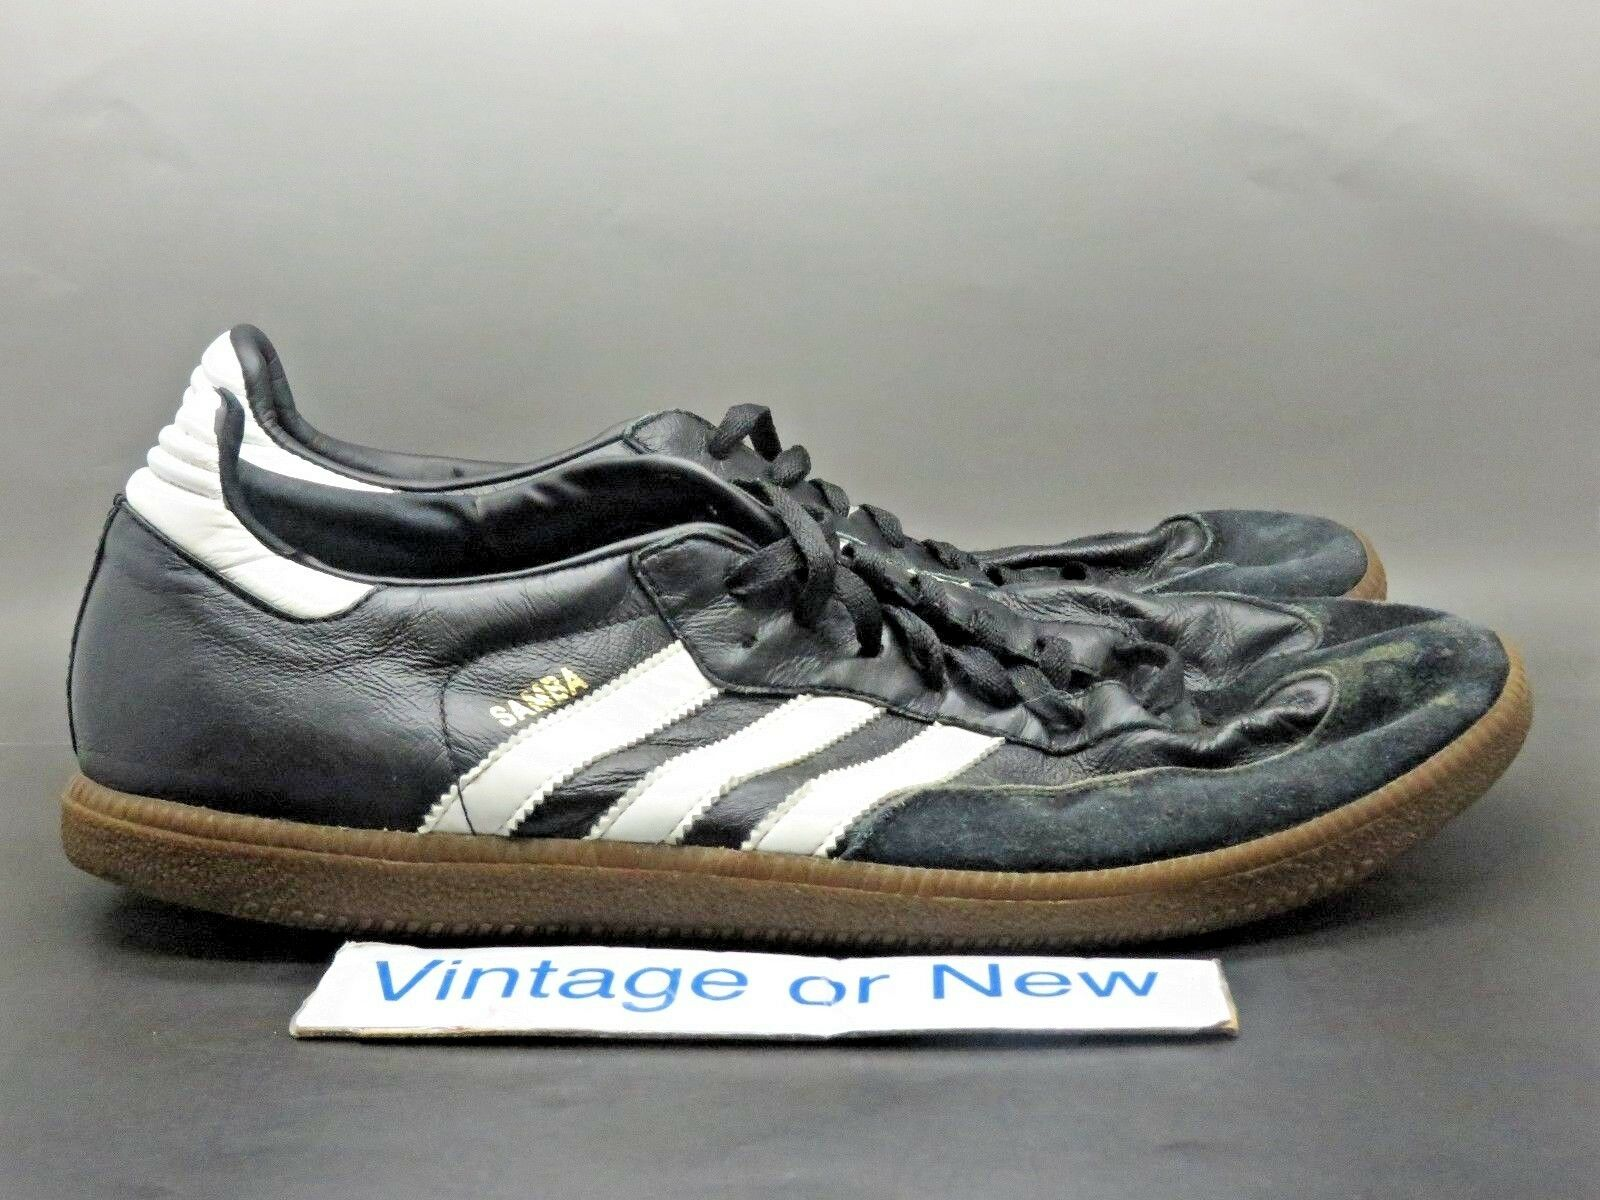 Men's VTG Adidas Samba Black White Gum Soccer Shoes 2008 Price reduction New shoes for men and women, limited time discount